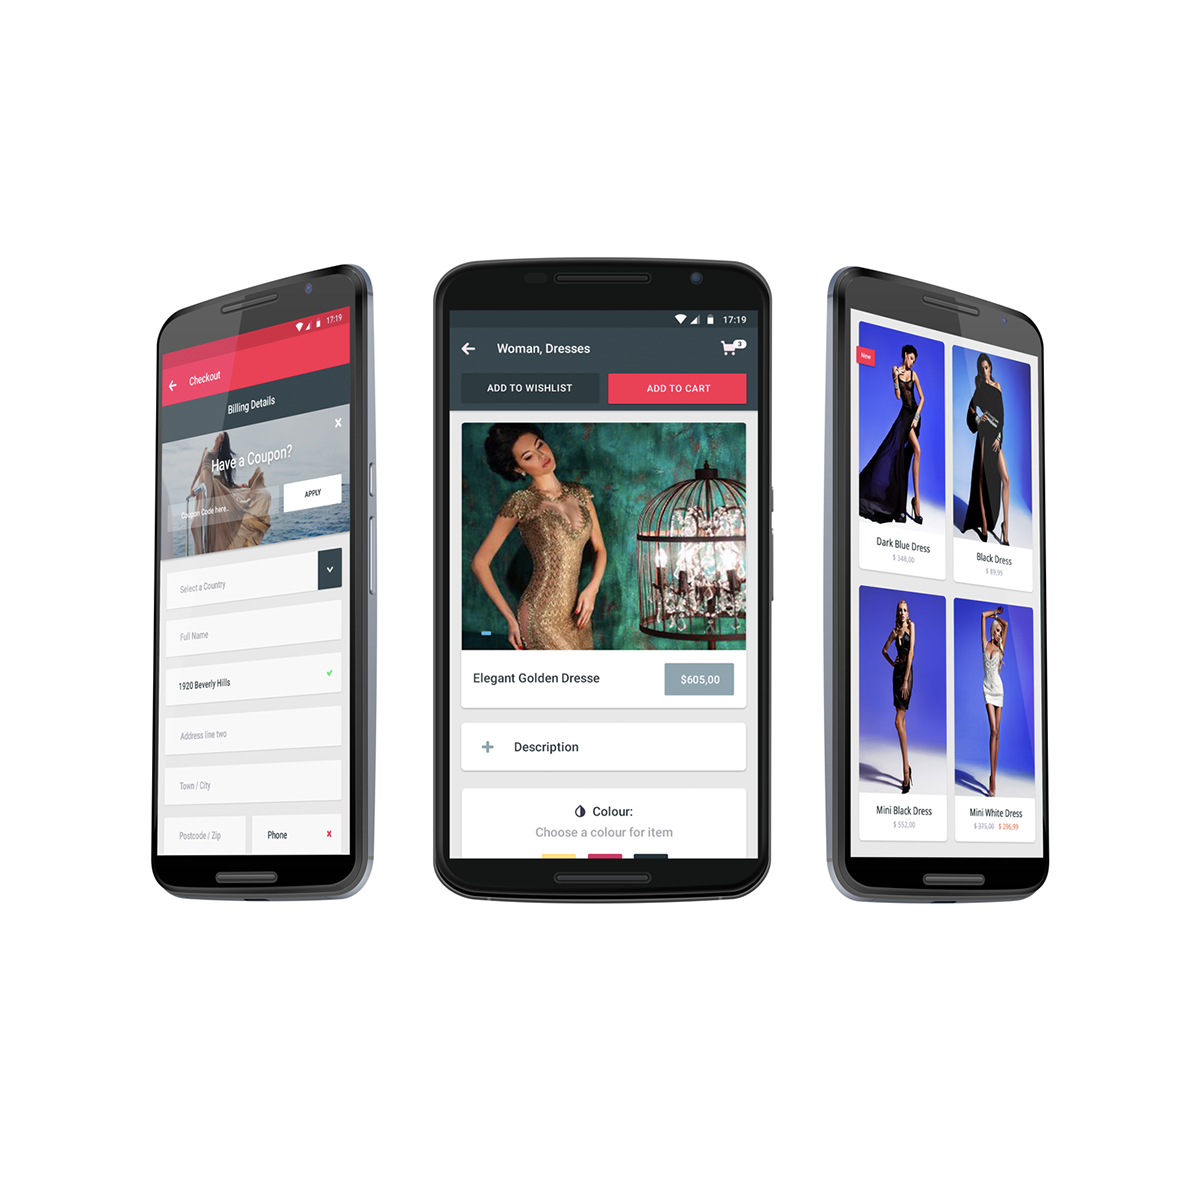 Material Design E-Commerce App for Android  on Wacom Gallery